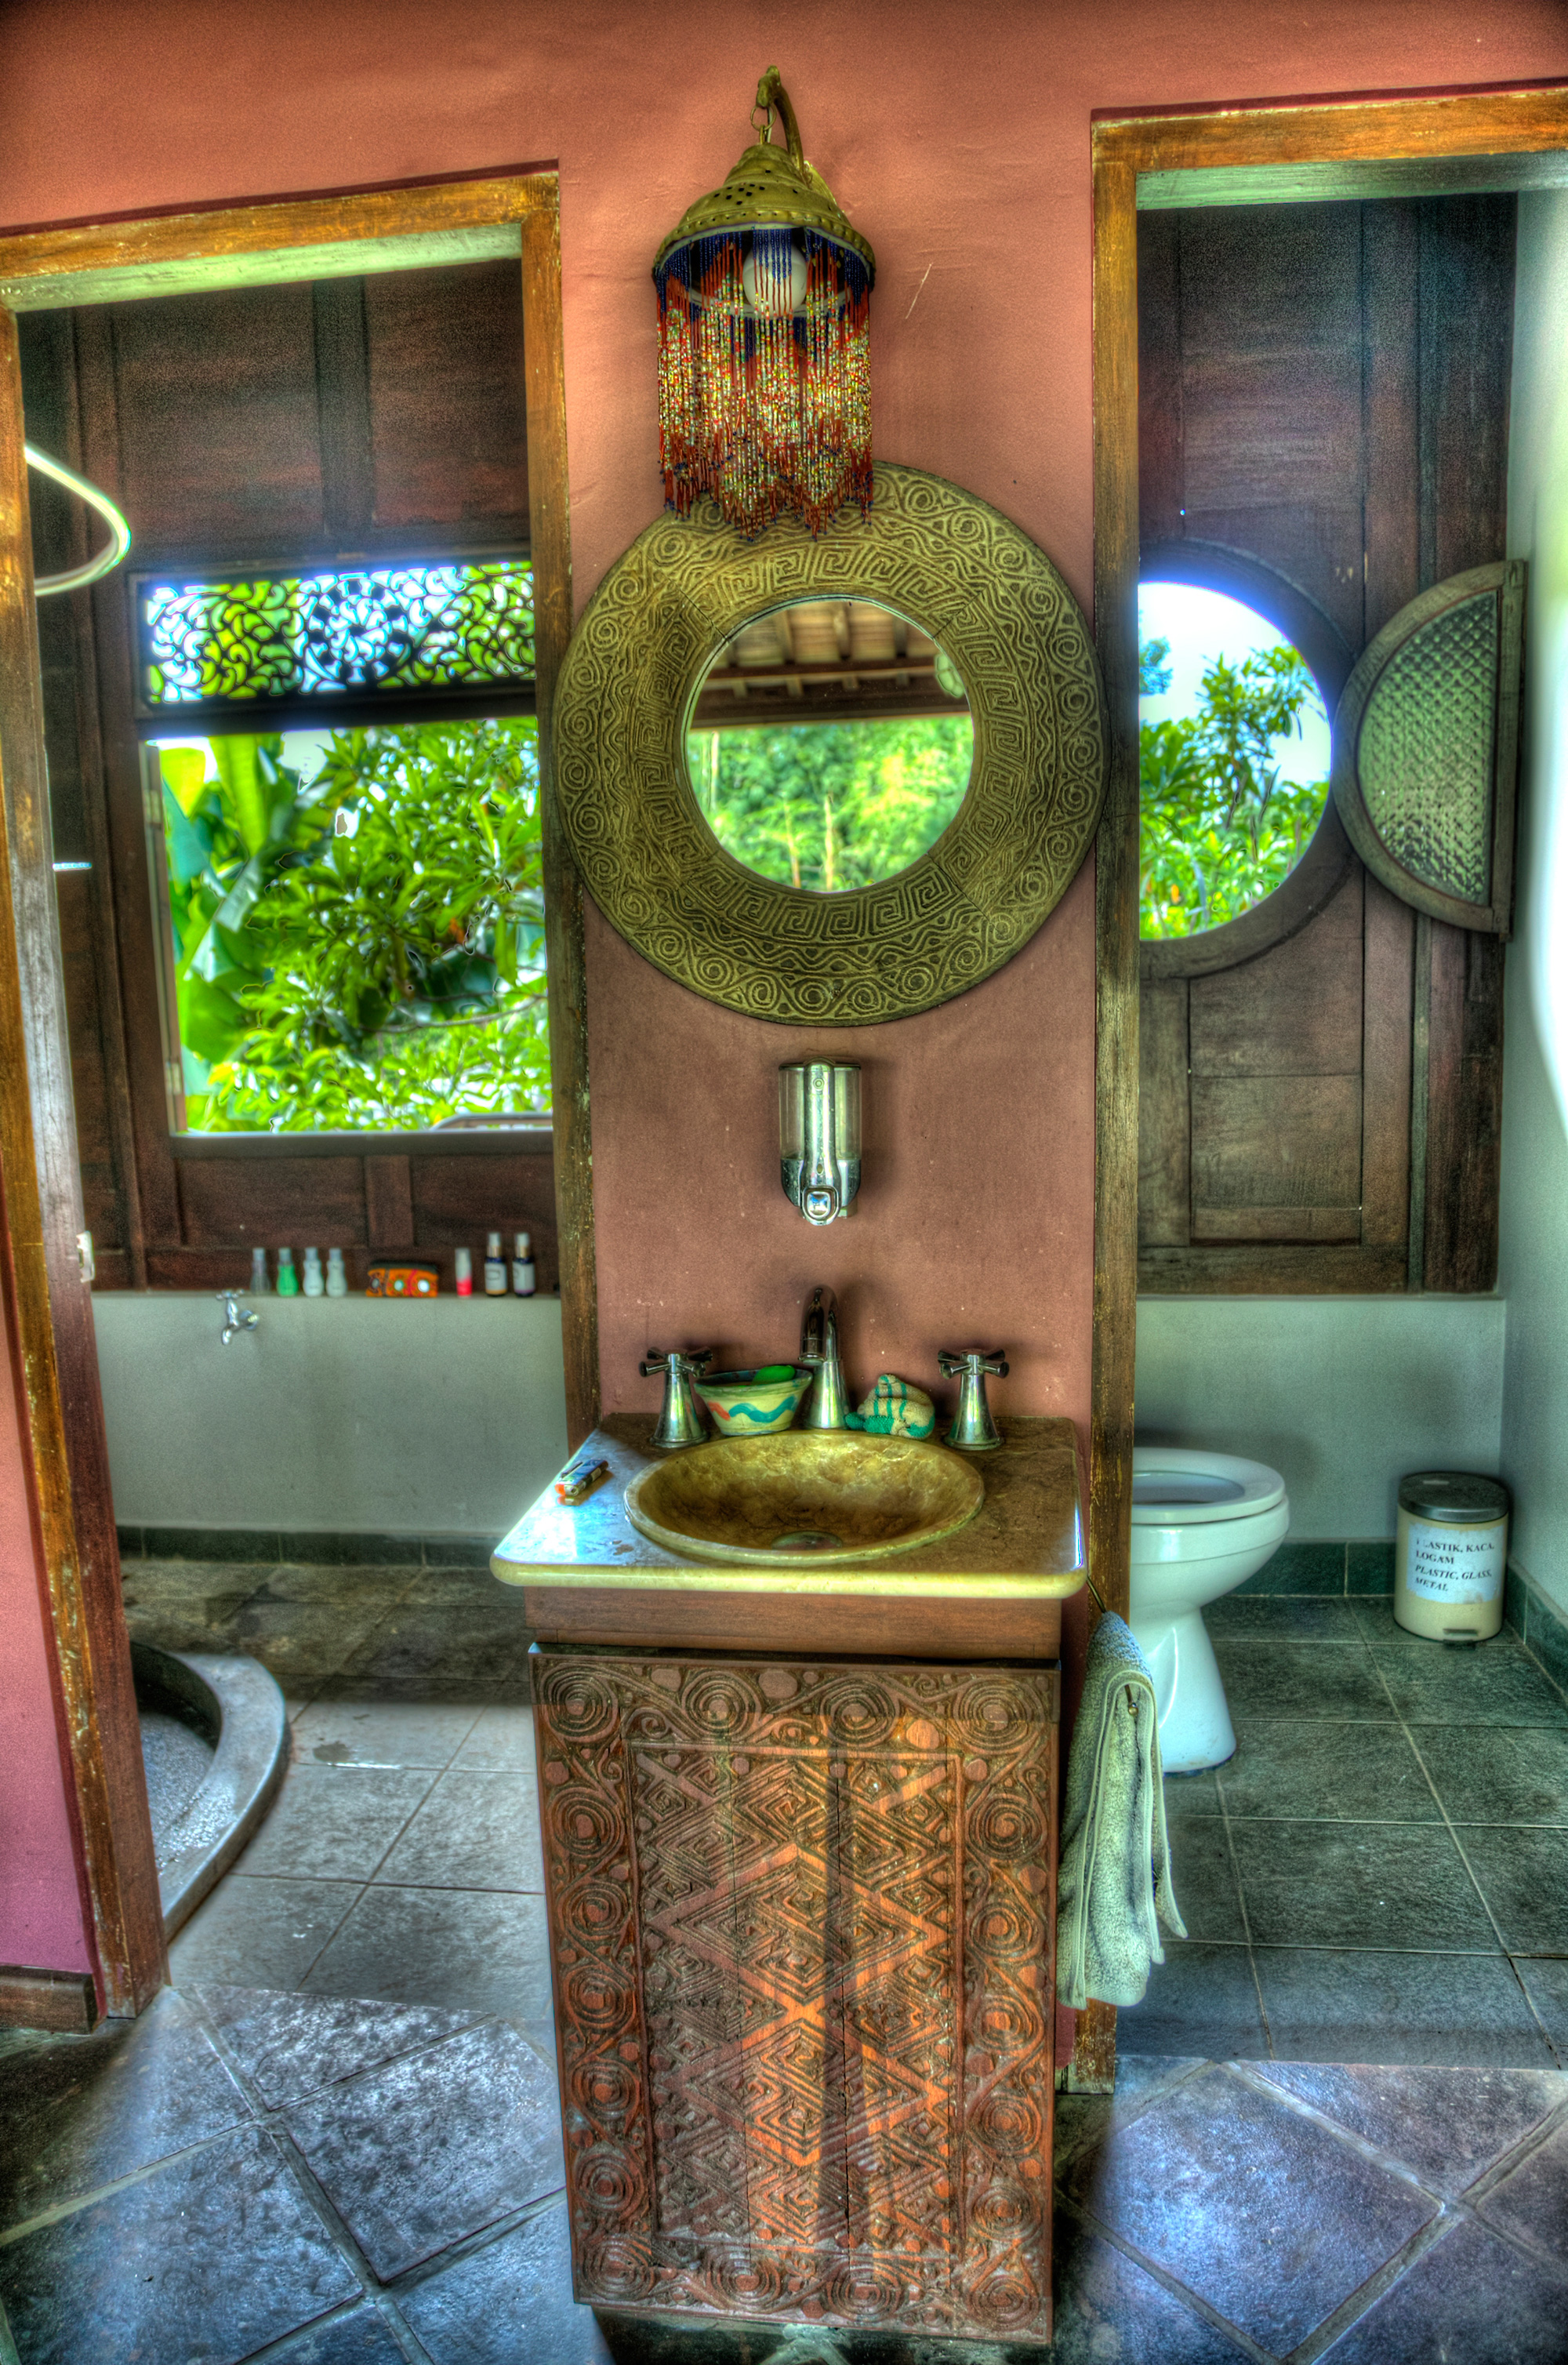 474A9252_3_4_tonemapped